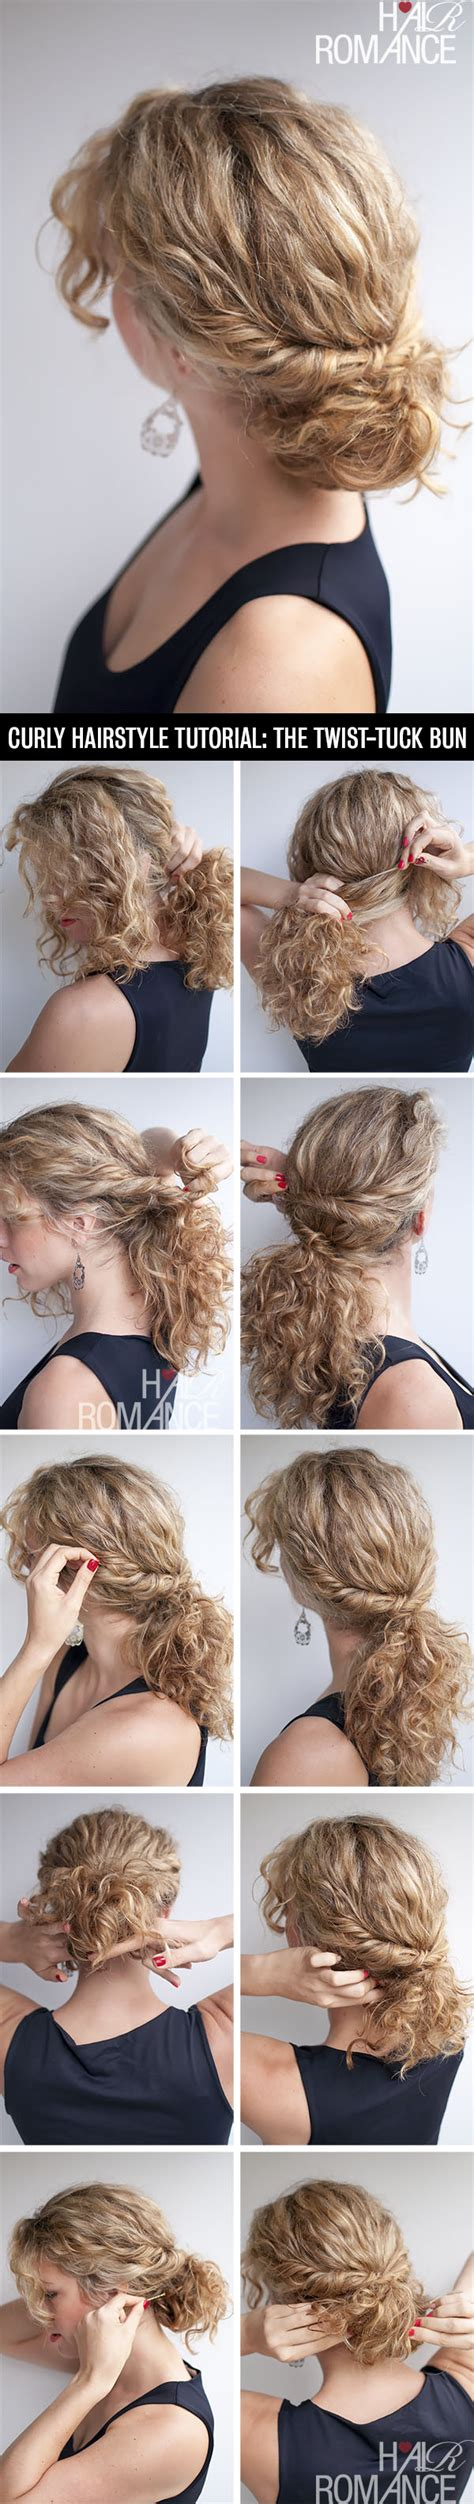 how to style natural curly hair step by step curly hairstyle tutorial the twist tuck bun hair romance